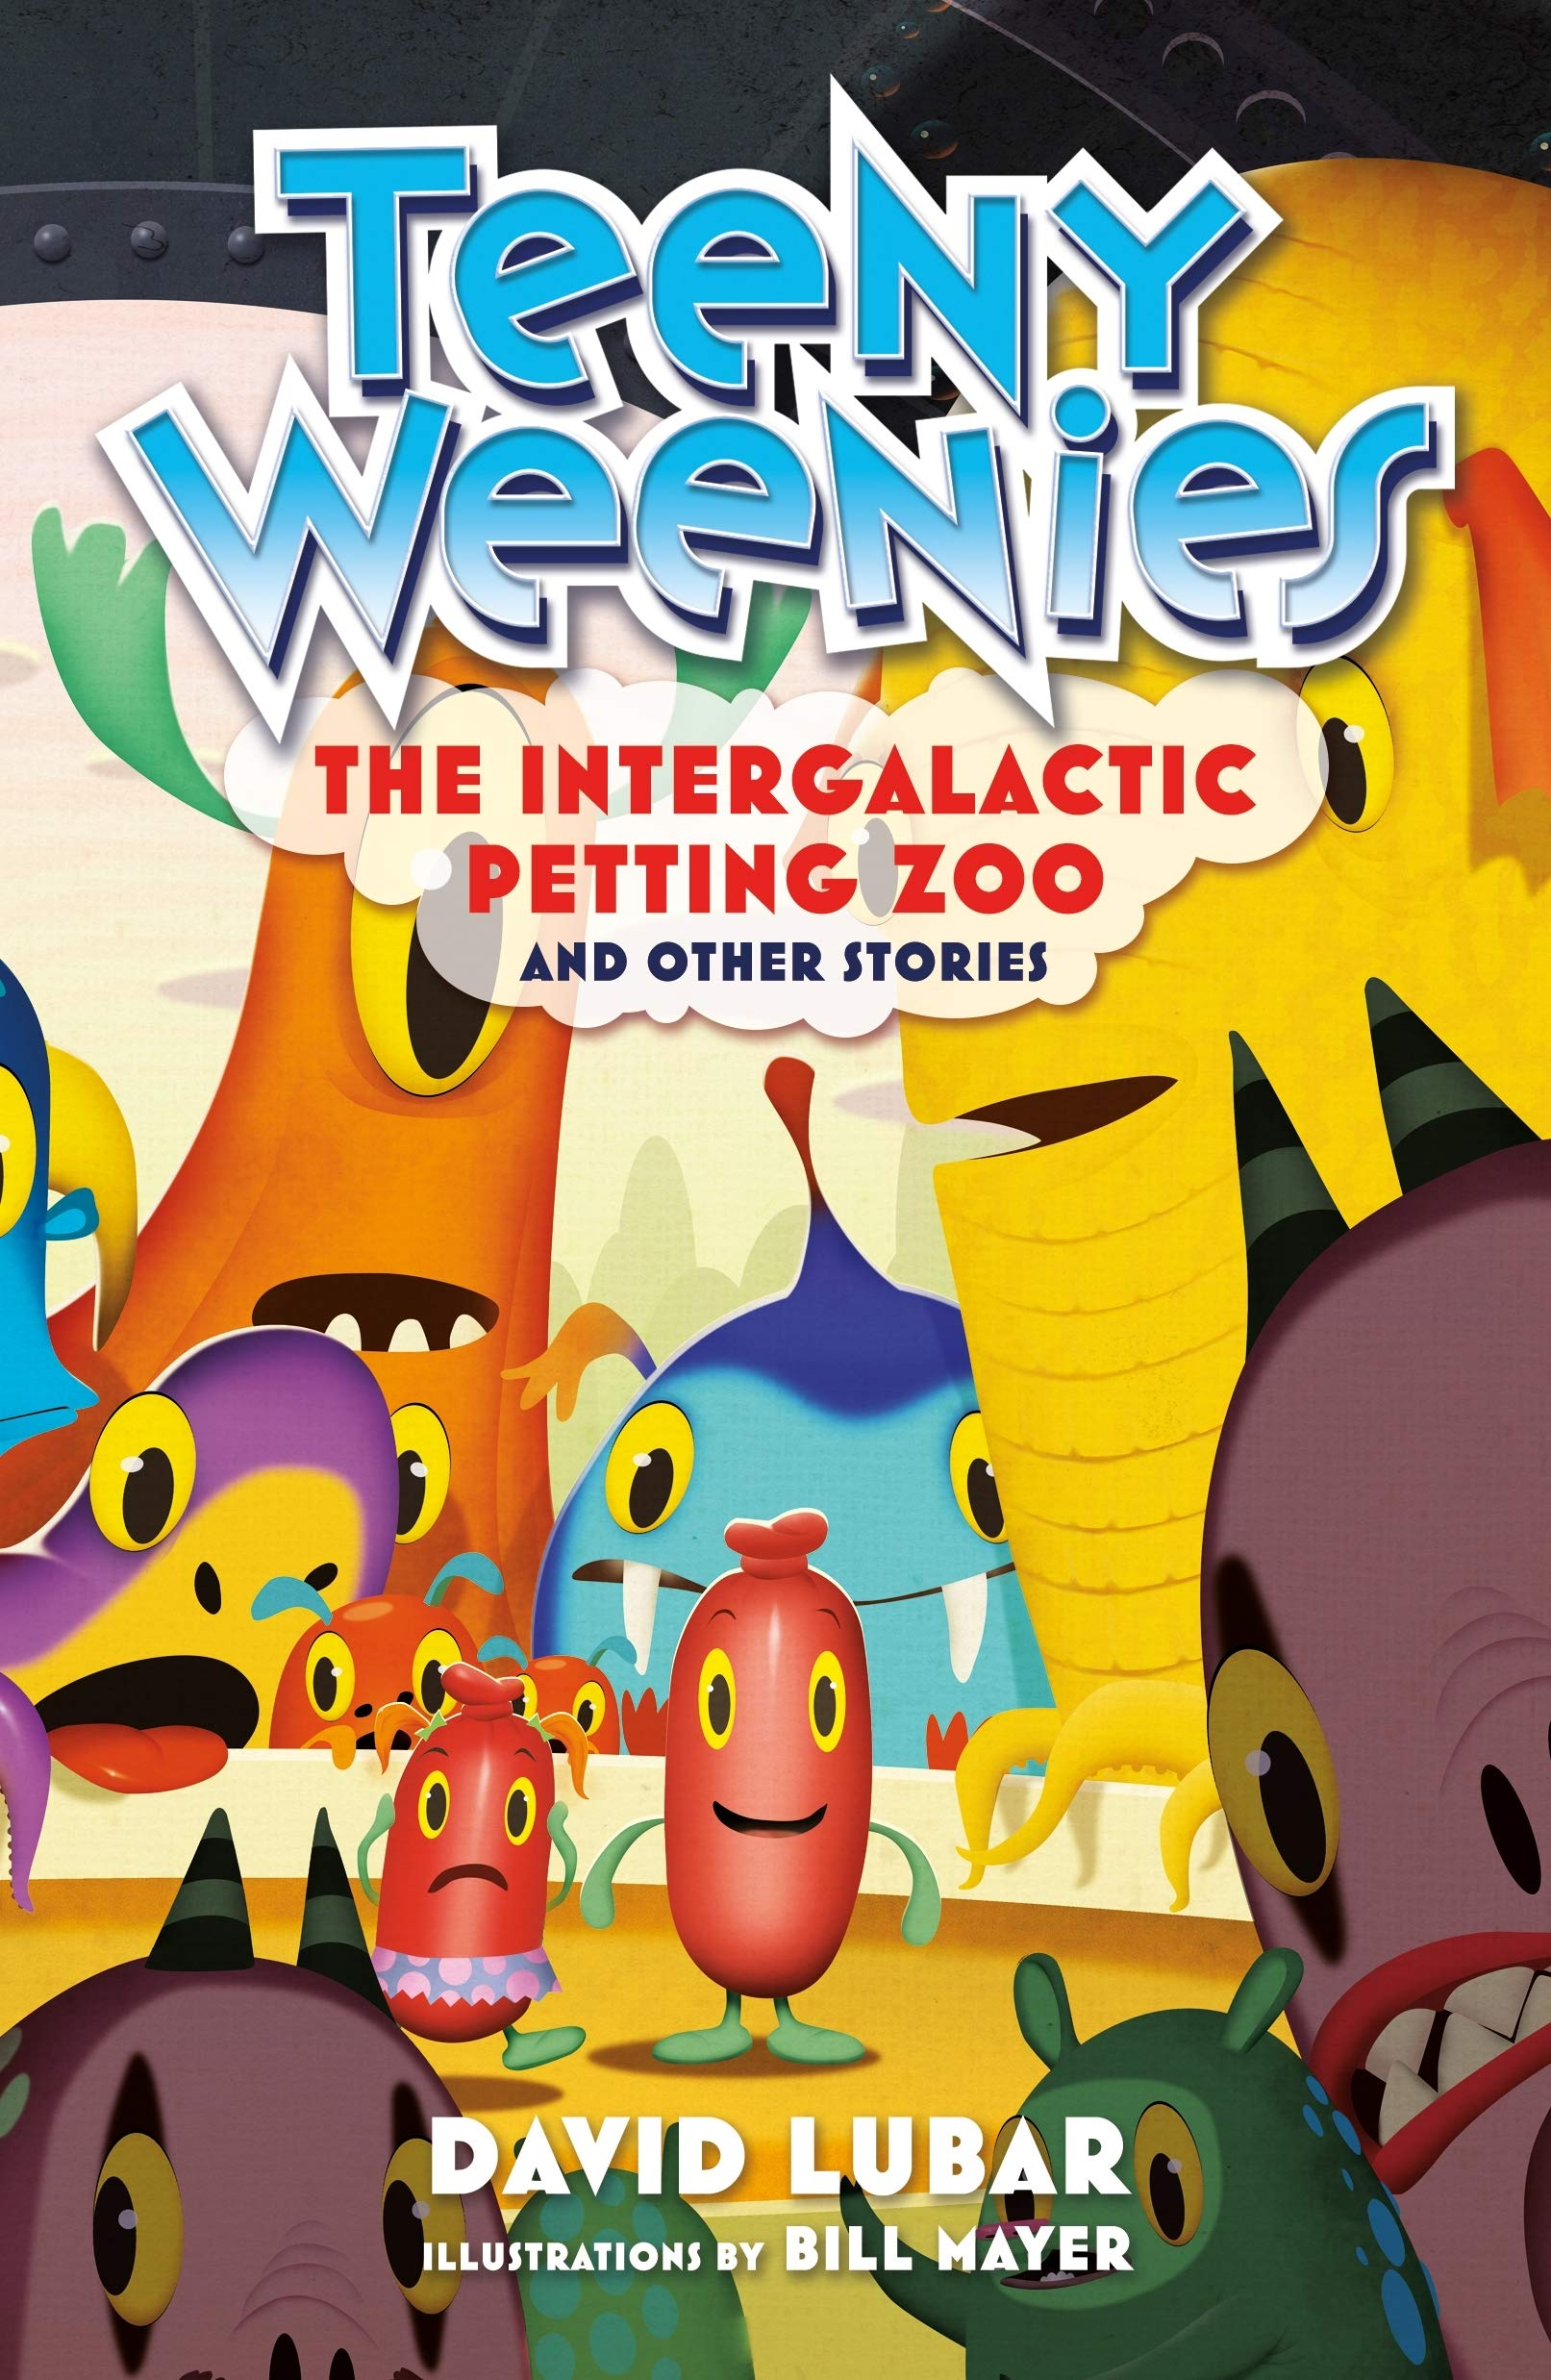 Teeny Weenies: The Intergalactic Petting Zoo: And Other Stories